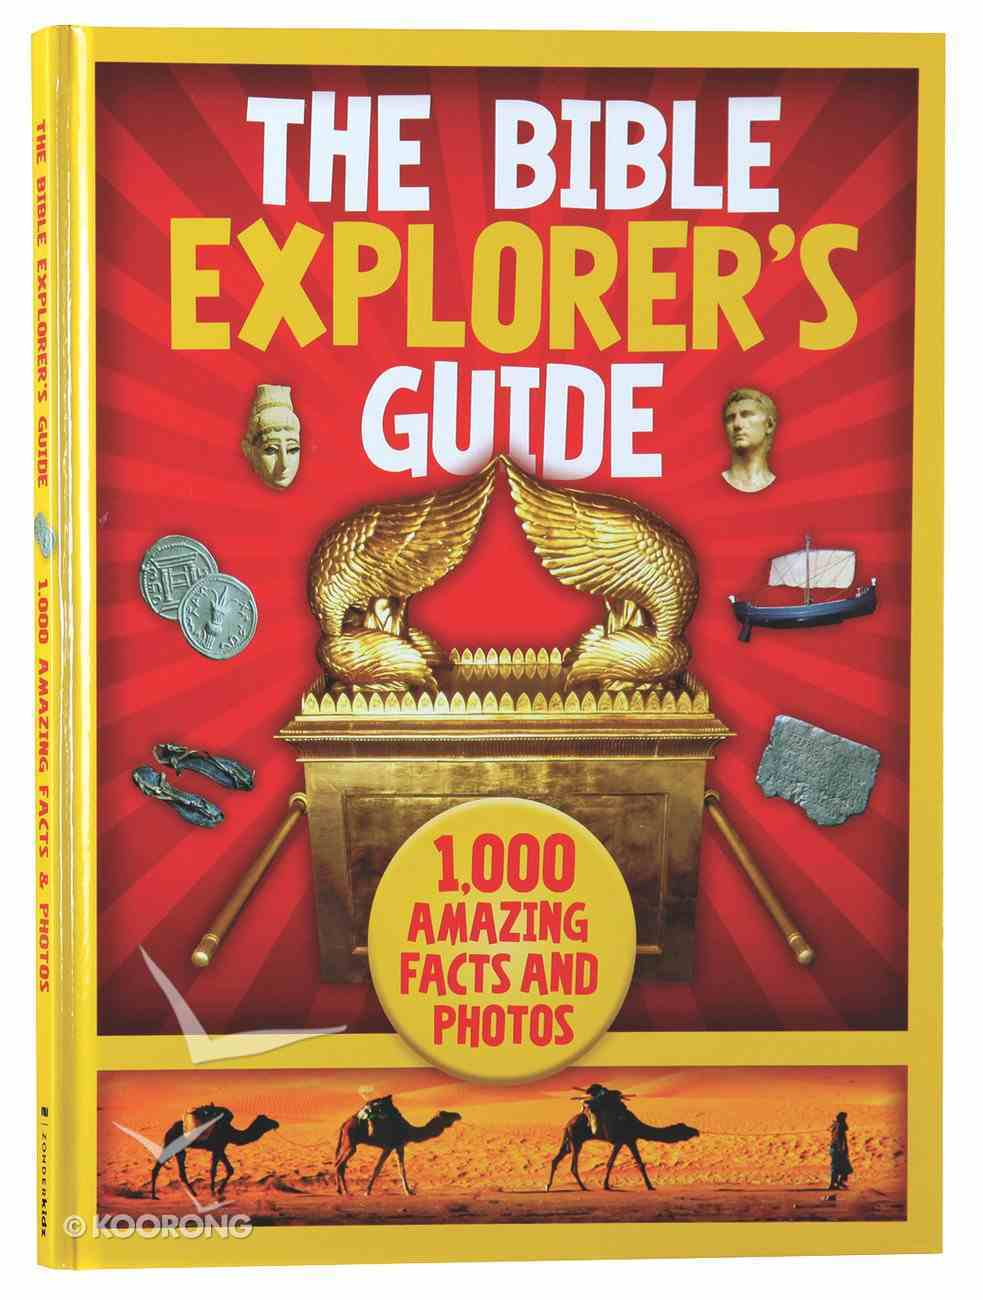 The Bible Explorer's Guide: 1000 Amazing Facts and Photos Hardback